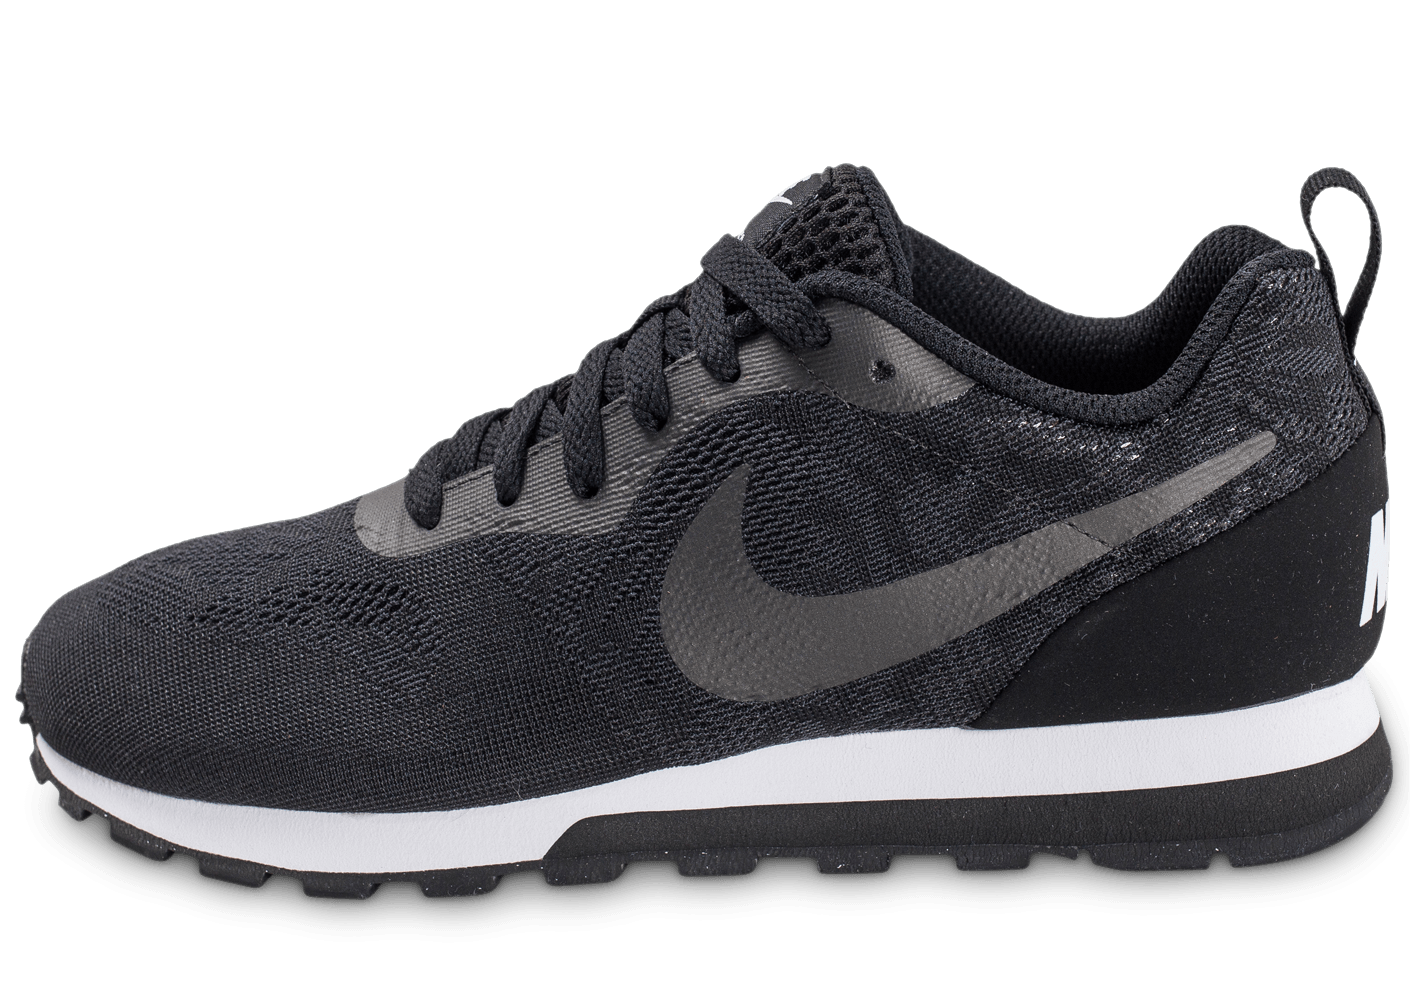 Nike MD Runner 2 breathe W noire